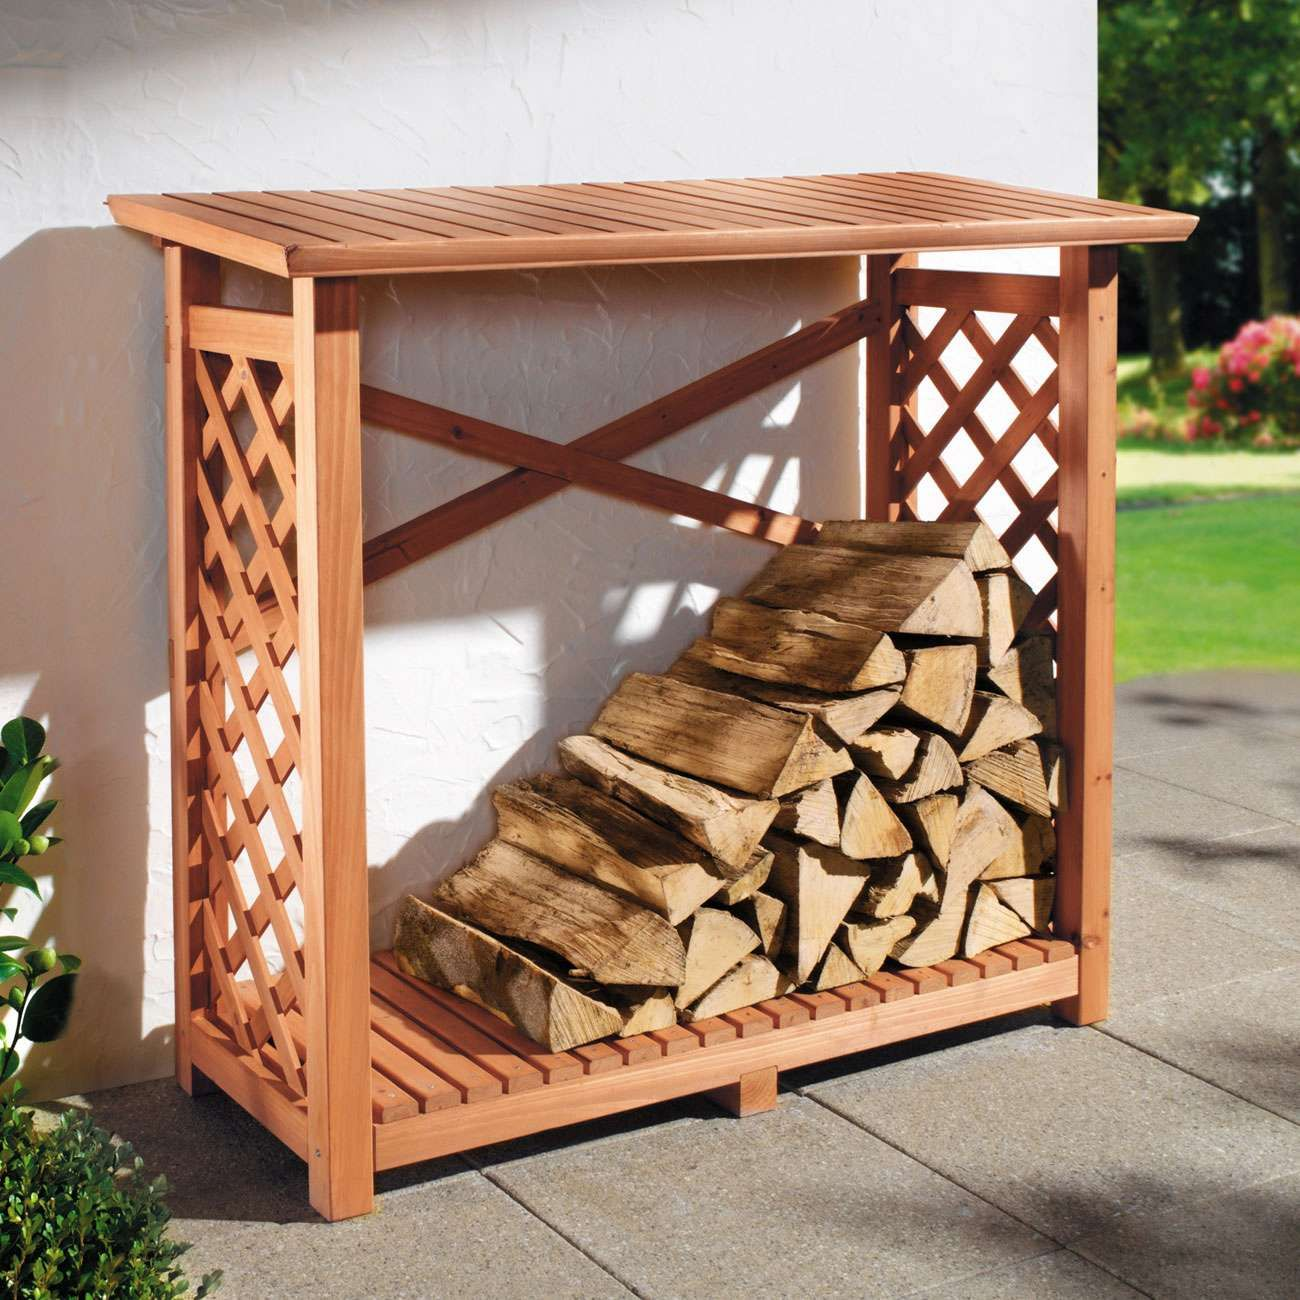 Find this Pin and more on Garden/Outdoor. Image detail for -Firewood Storage  ... - A More Attractive Option For Storing Firewood Garden/Outdoor